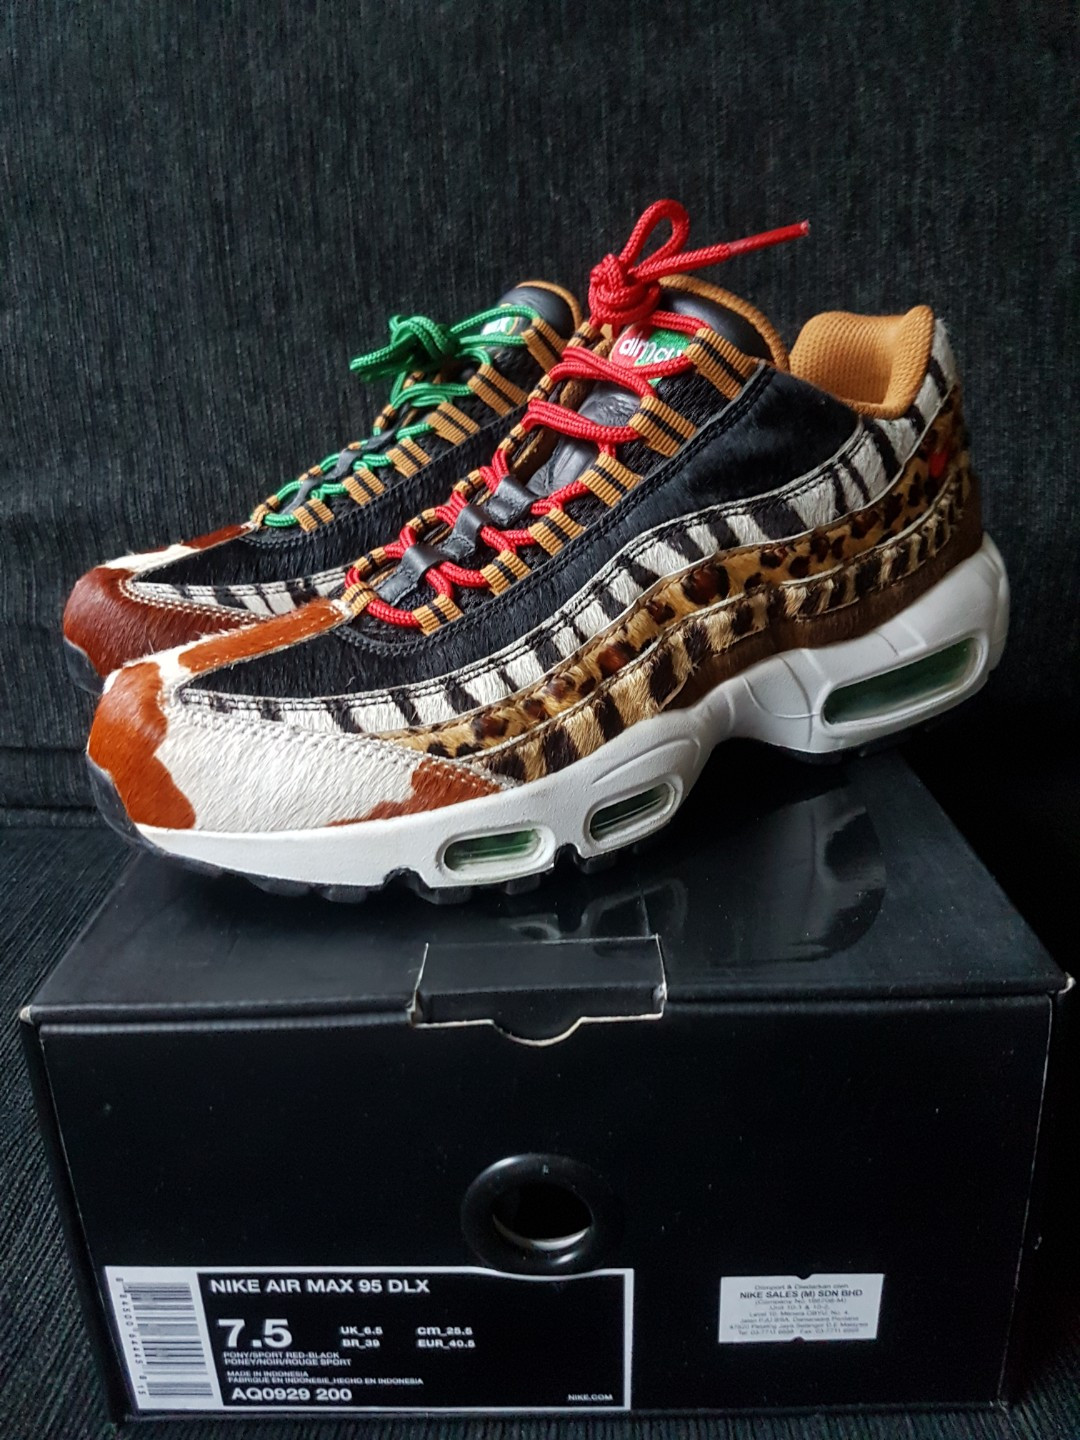 the best attitude 89398 5cb9d Nike Air Max 95 DLX, Men s Fashion, Footwear, Sneakers on Carousell